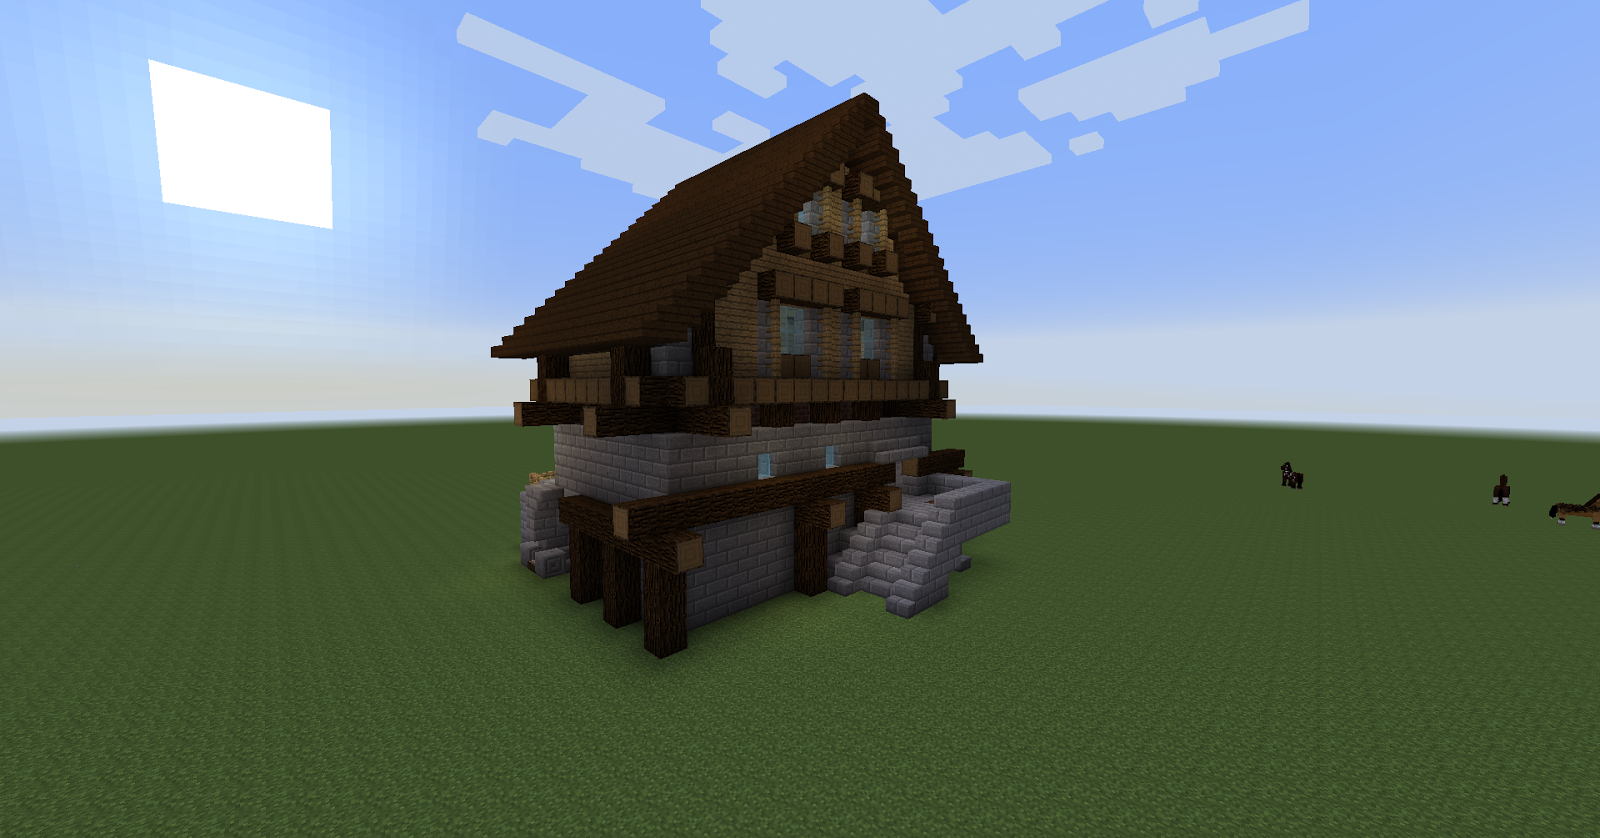 Maison en bois minecraft plan for Minecraft maison moderne plan